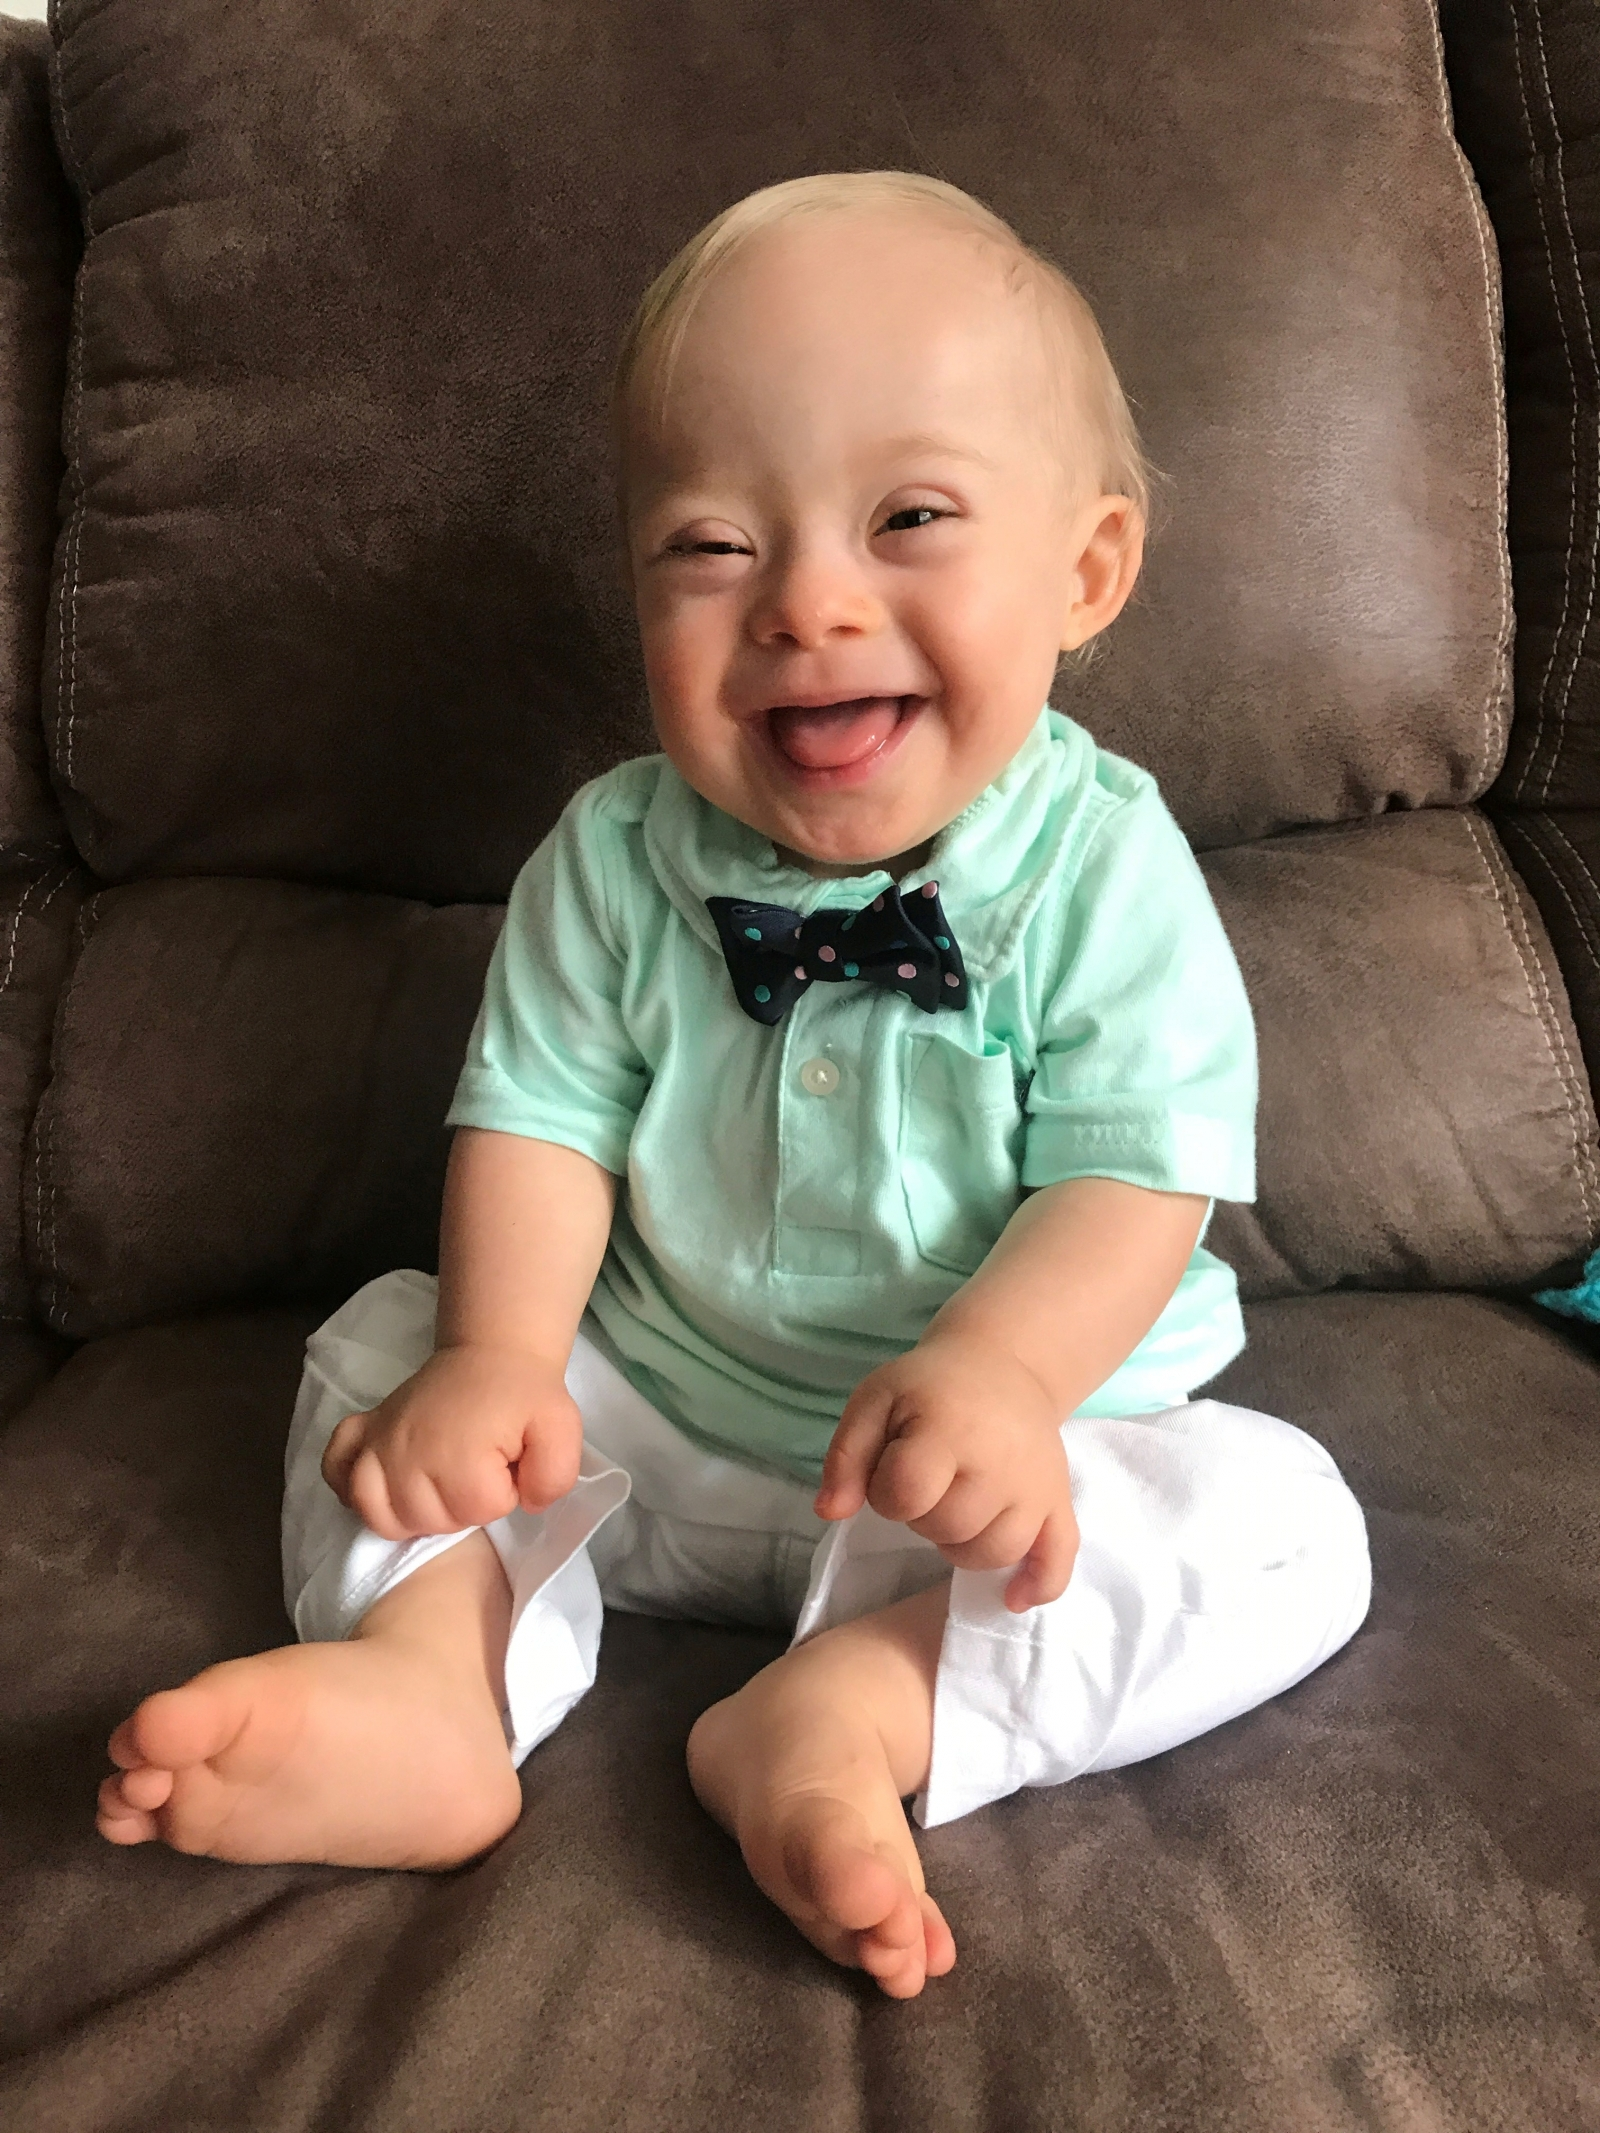 Meet 1-year-old Lucas Warren, the first child with Down syndrome to become face of Gerber Spokesbaby